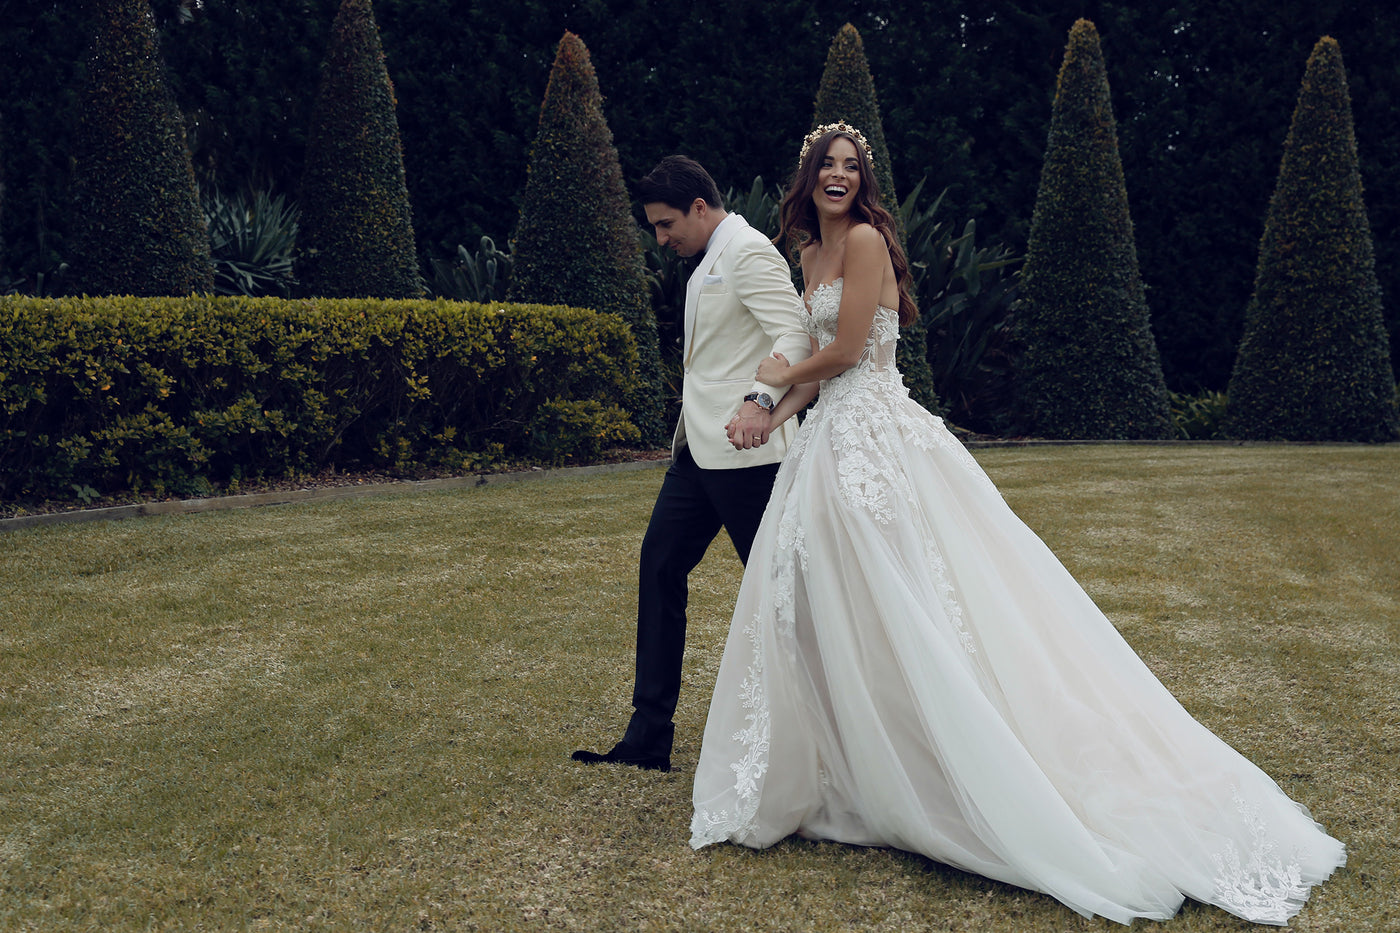 FROM THE RUNWAY TO THE AISLE : MONIKA RADULOVIC'S MODERN ROMANCE